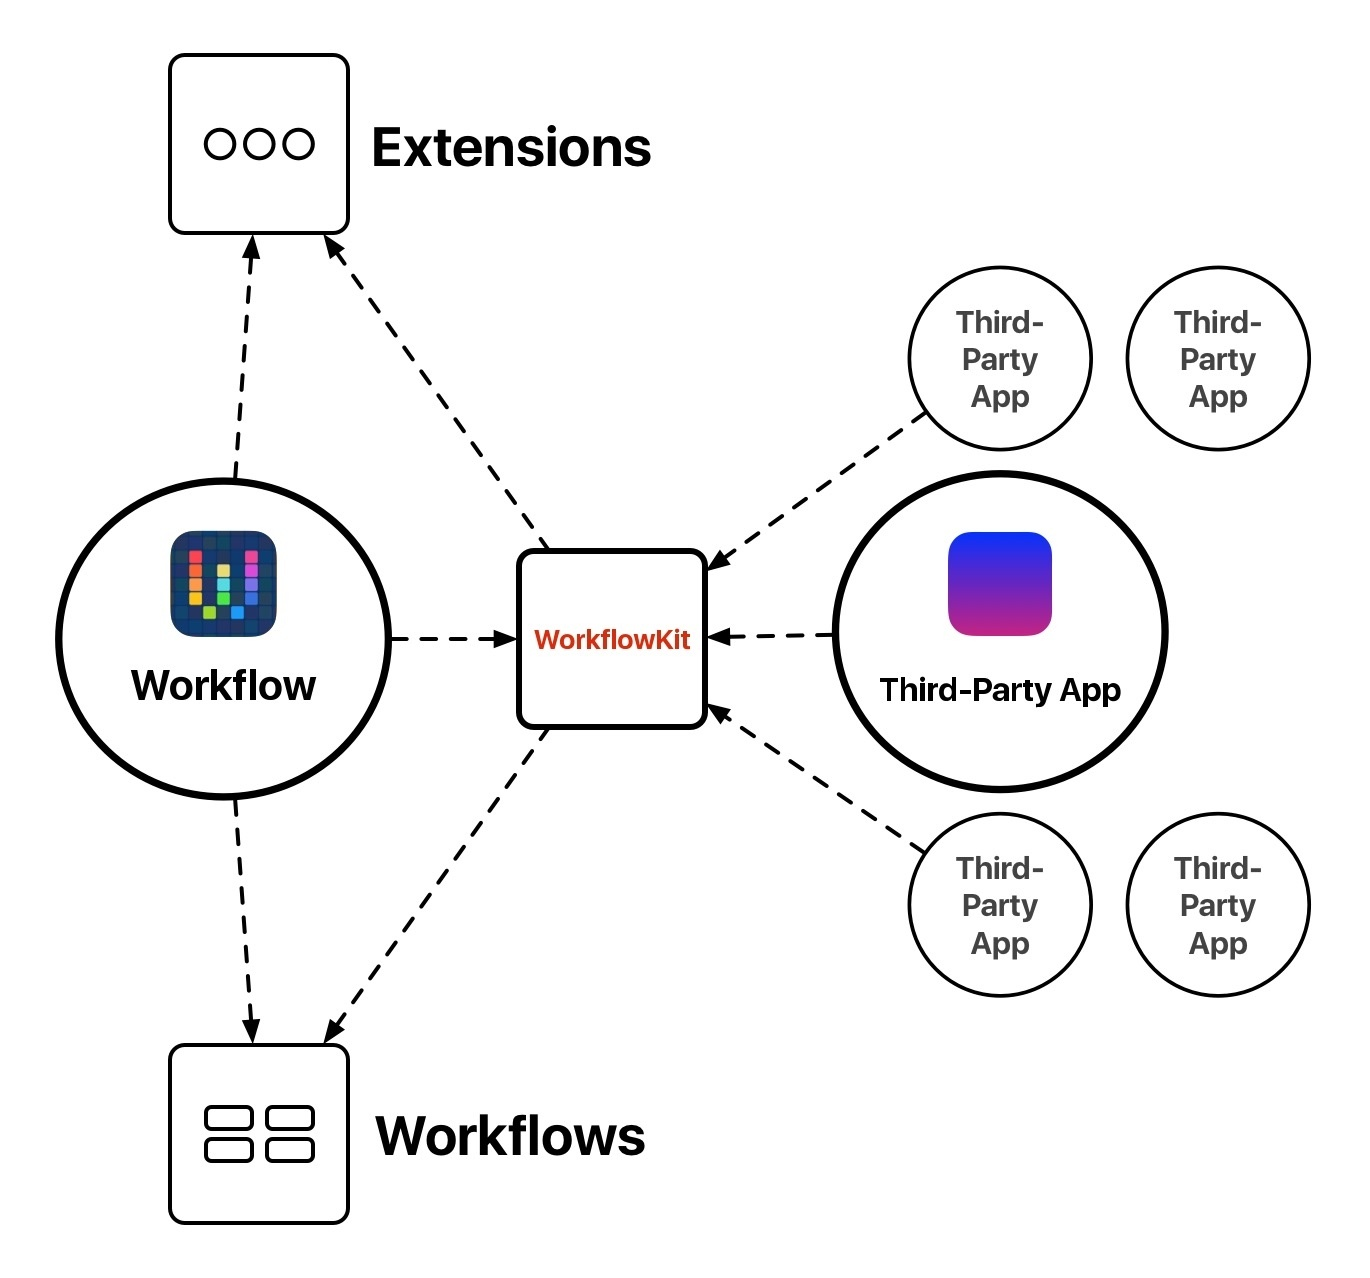 WorkflowKit would be the framework powering the Workflow app and actions from developers.